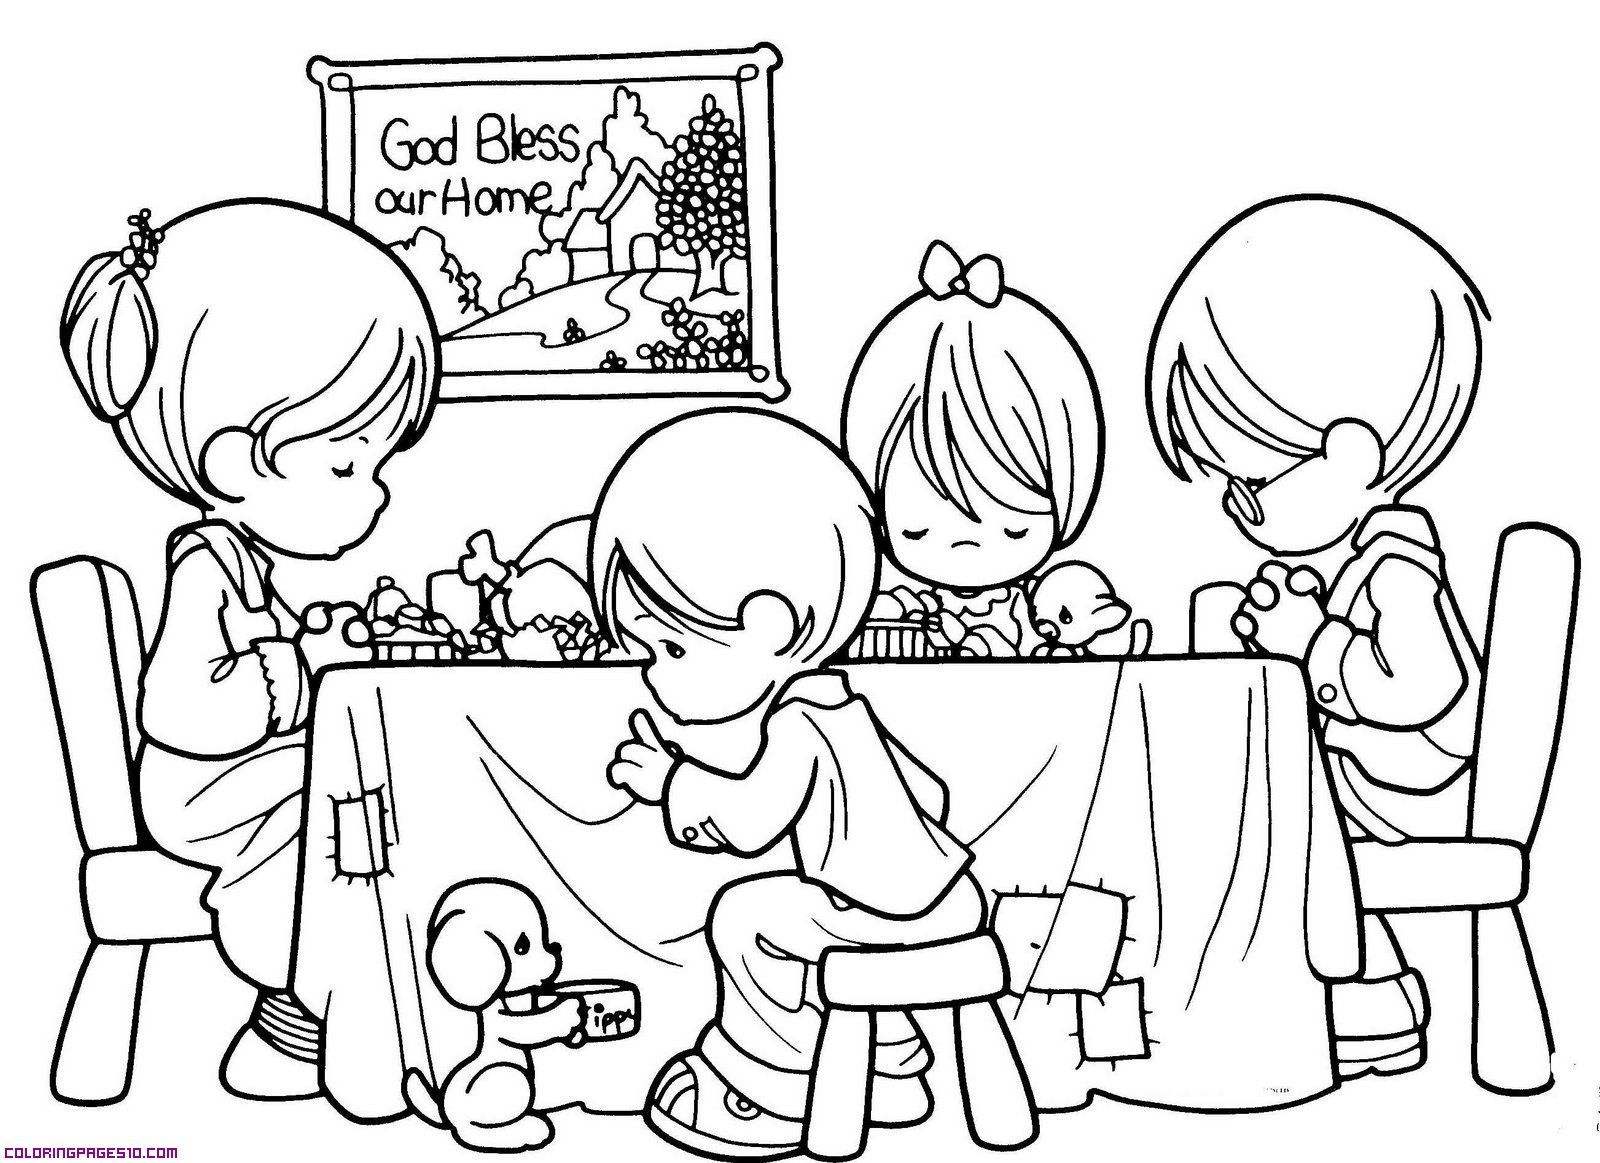 Lent Children Pray Fast Almsgiving Coloring Page Catholic